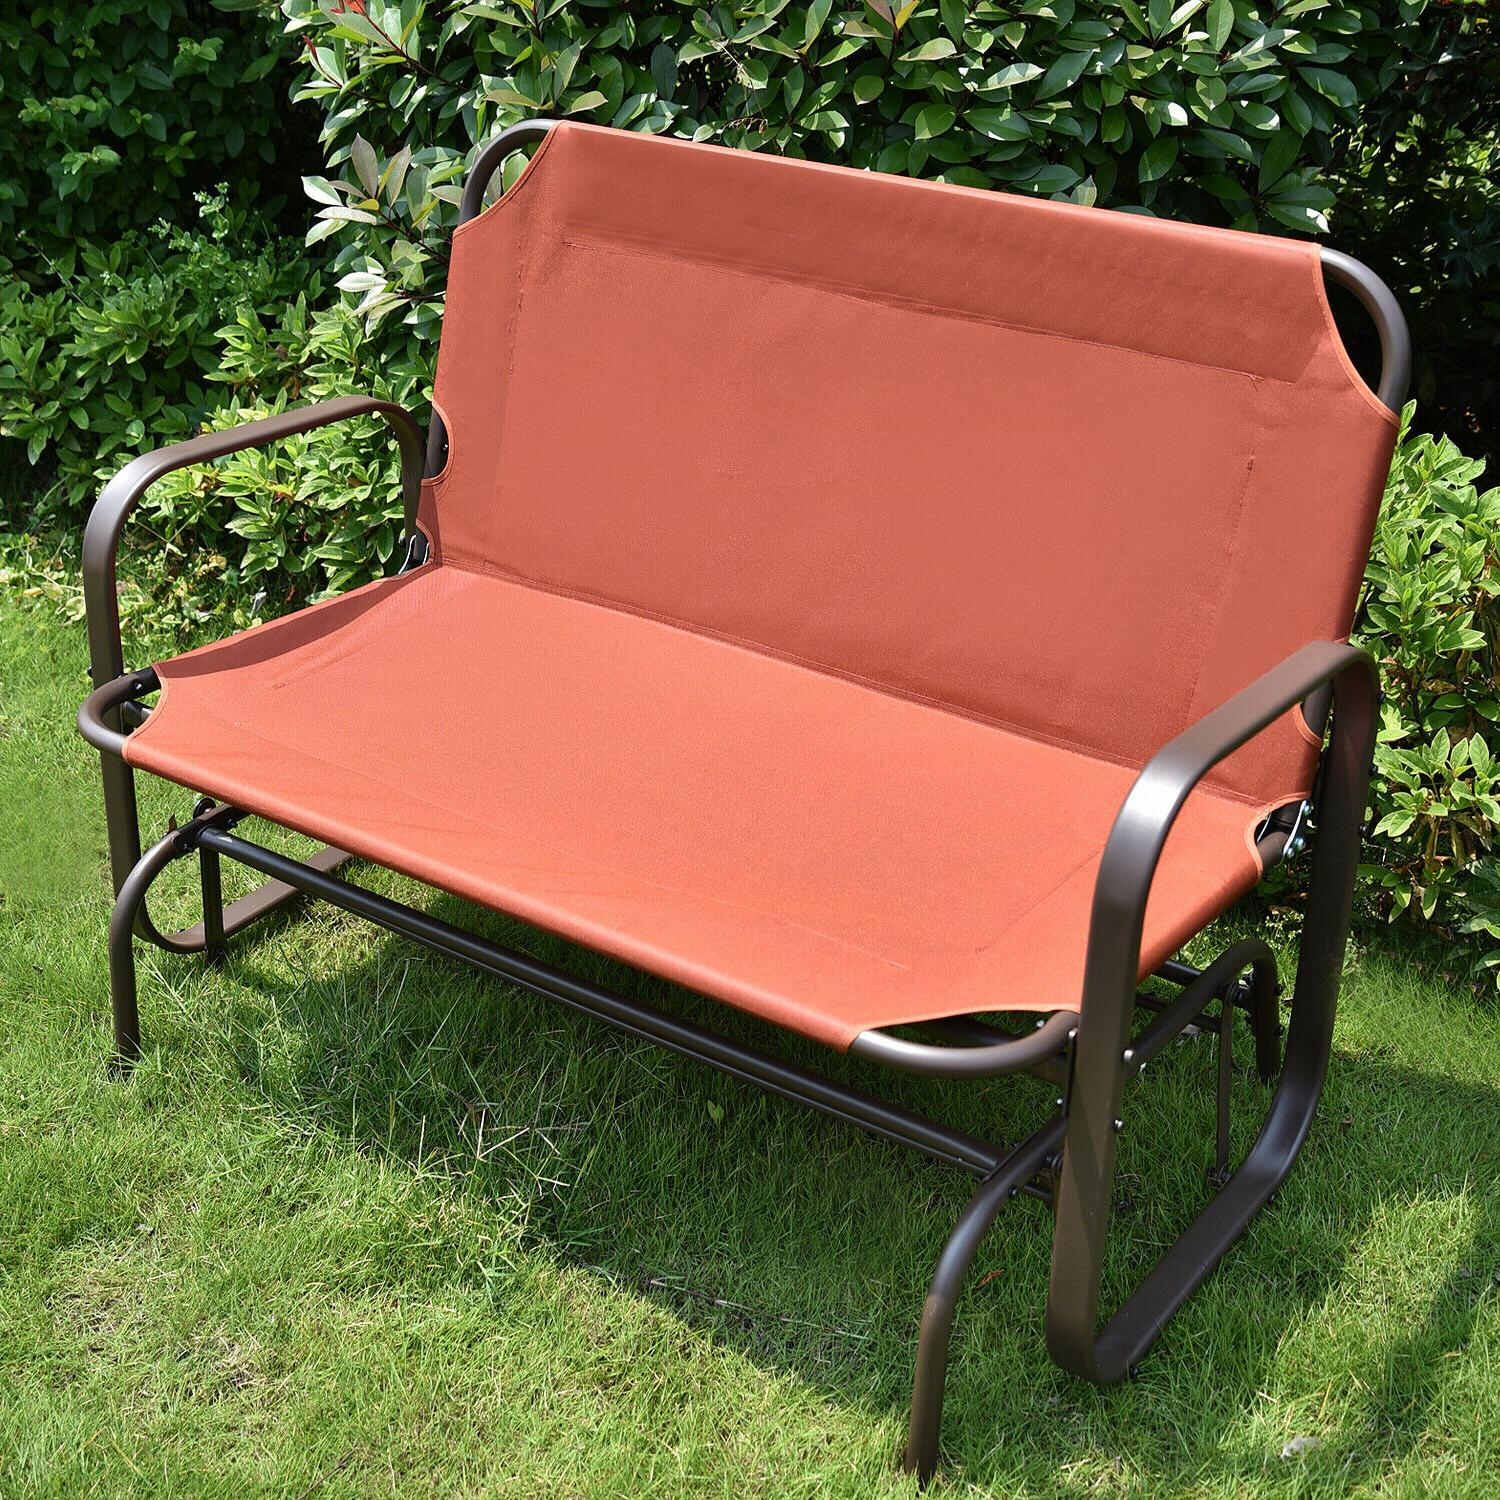 Patio Chair 2 Outdoor